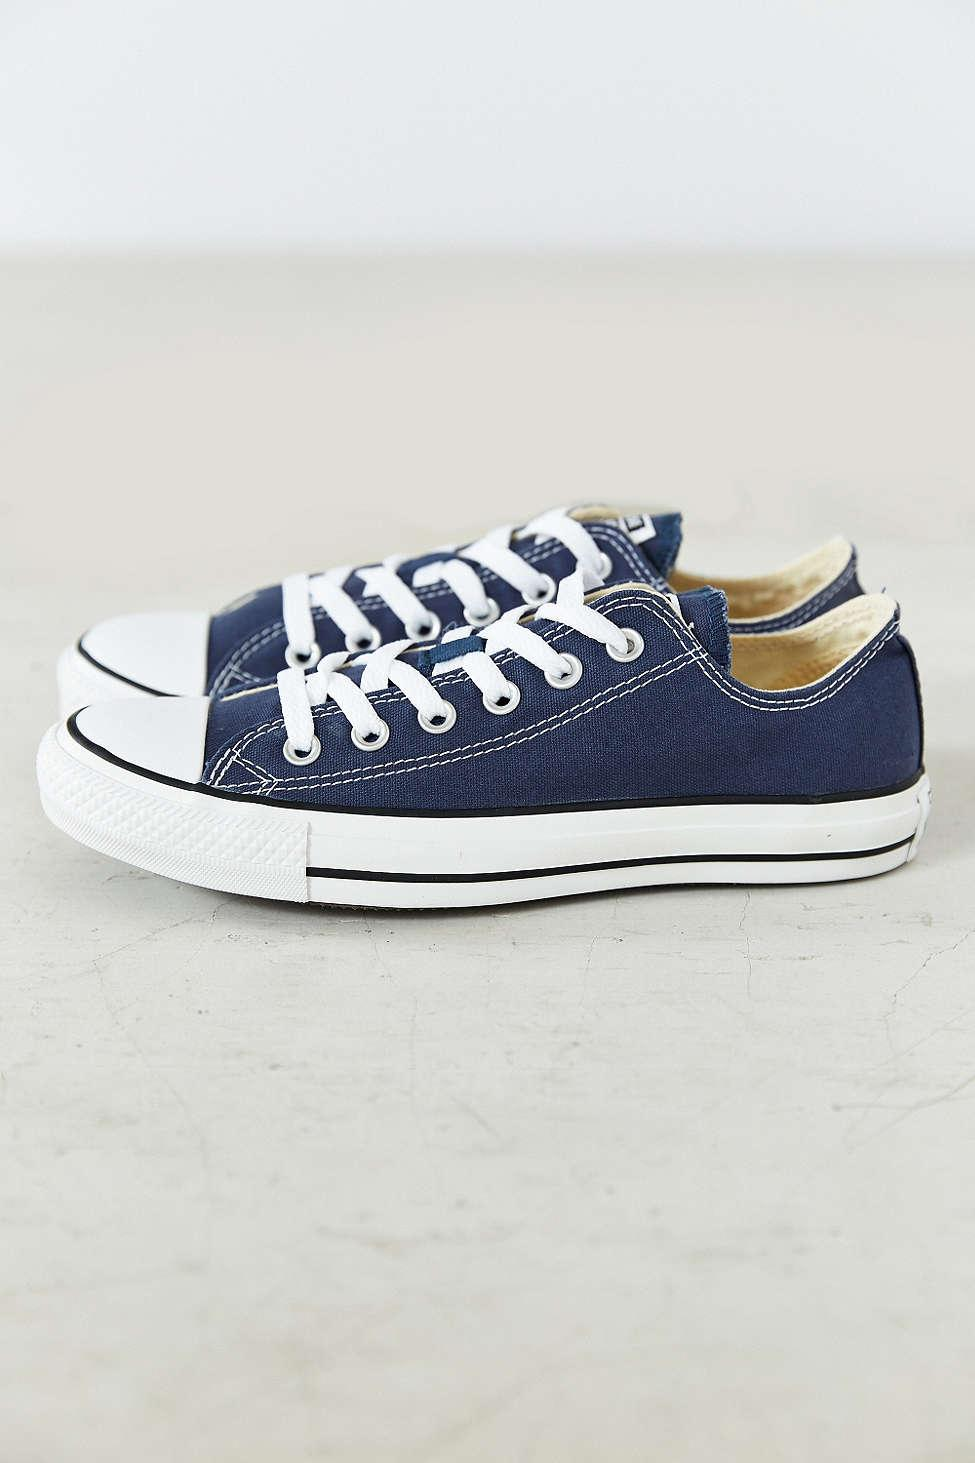 Converse Chuck Taylor All Star Low Top Sneaker in Blue for ...